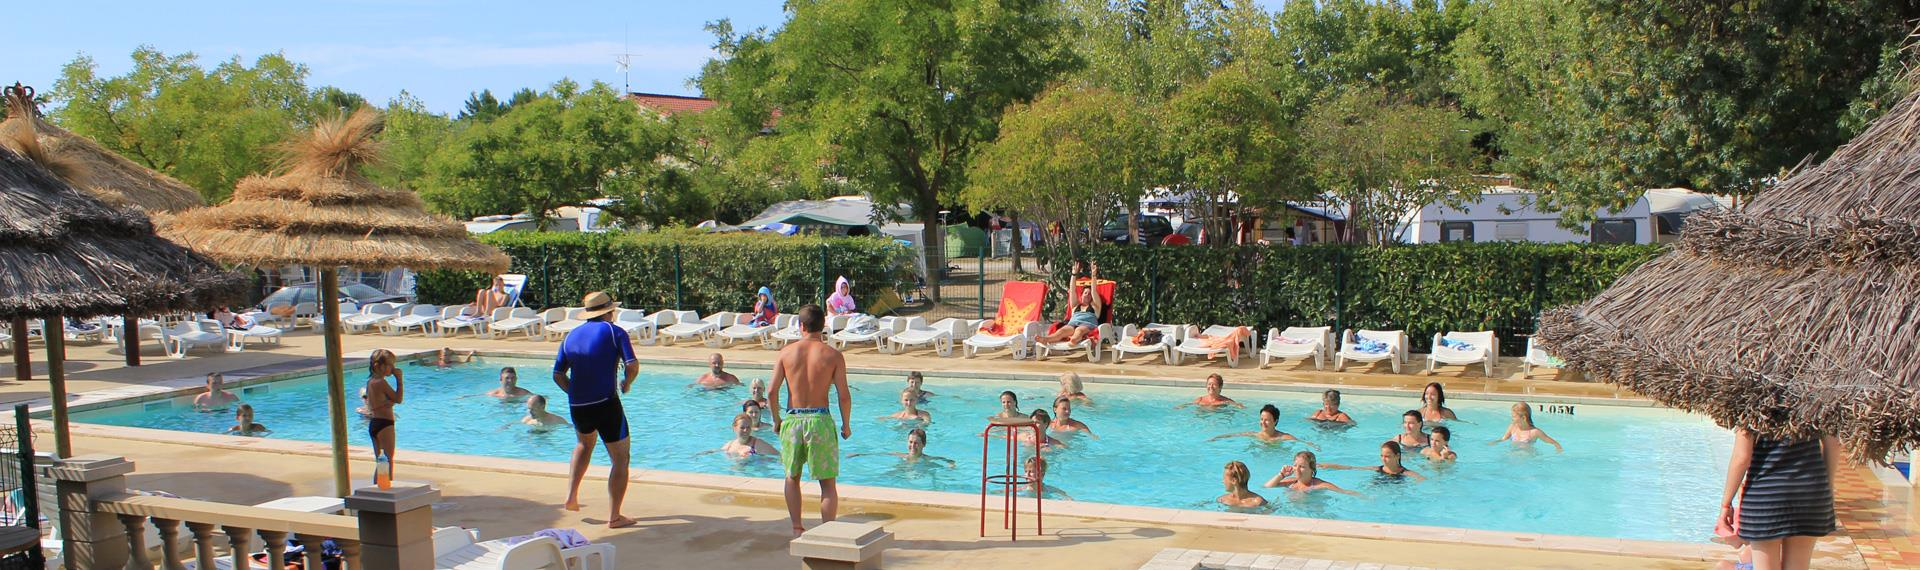 Request form for camping reservations La Gabinelle in Sauvian, camping near Sérignan